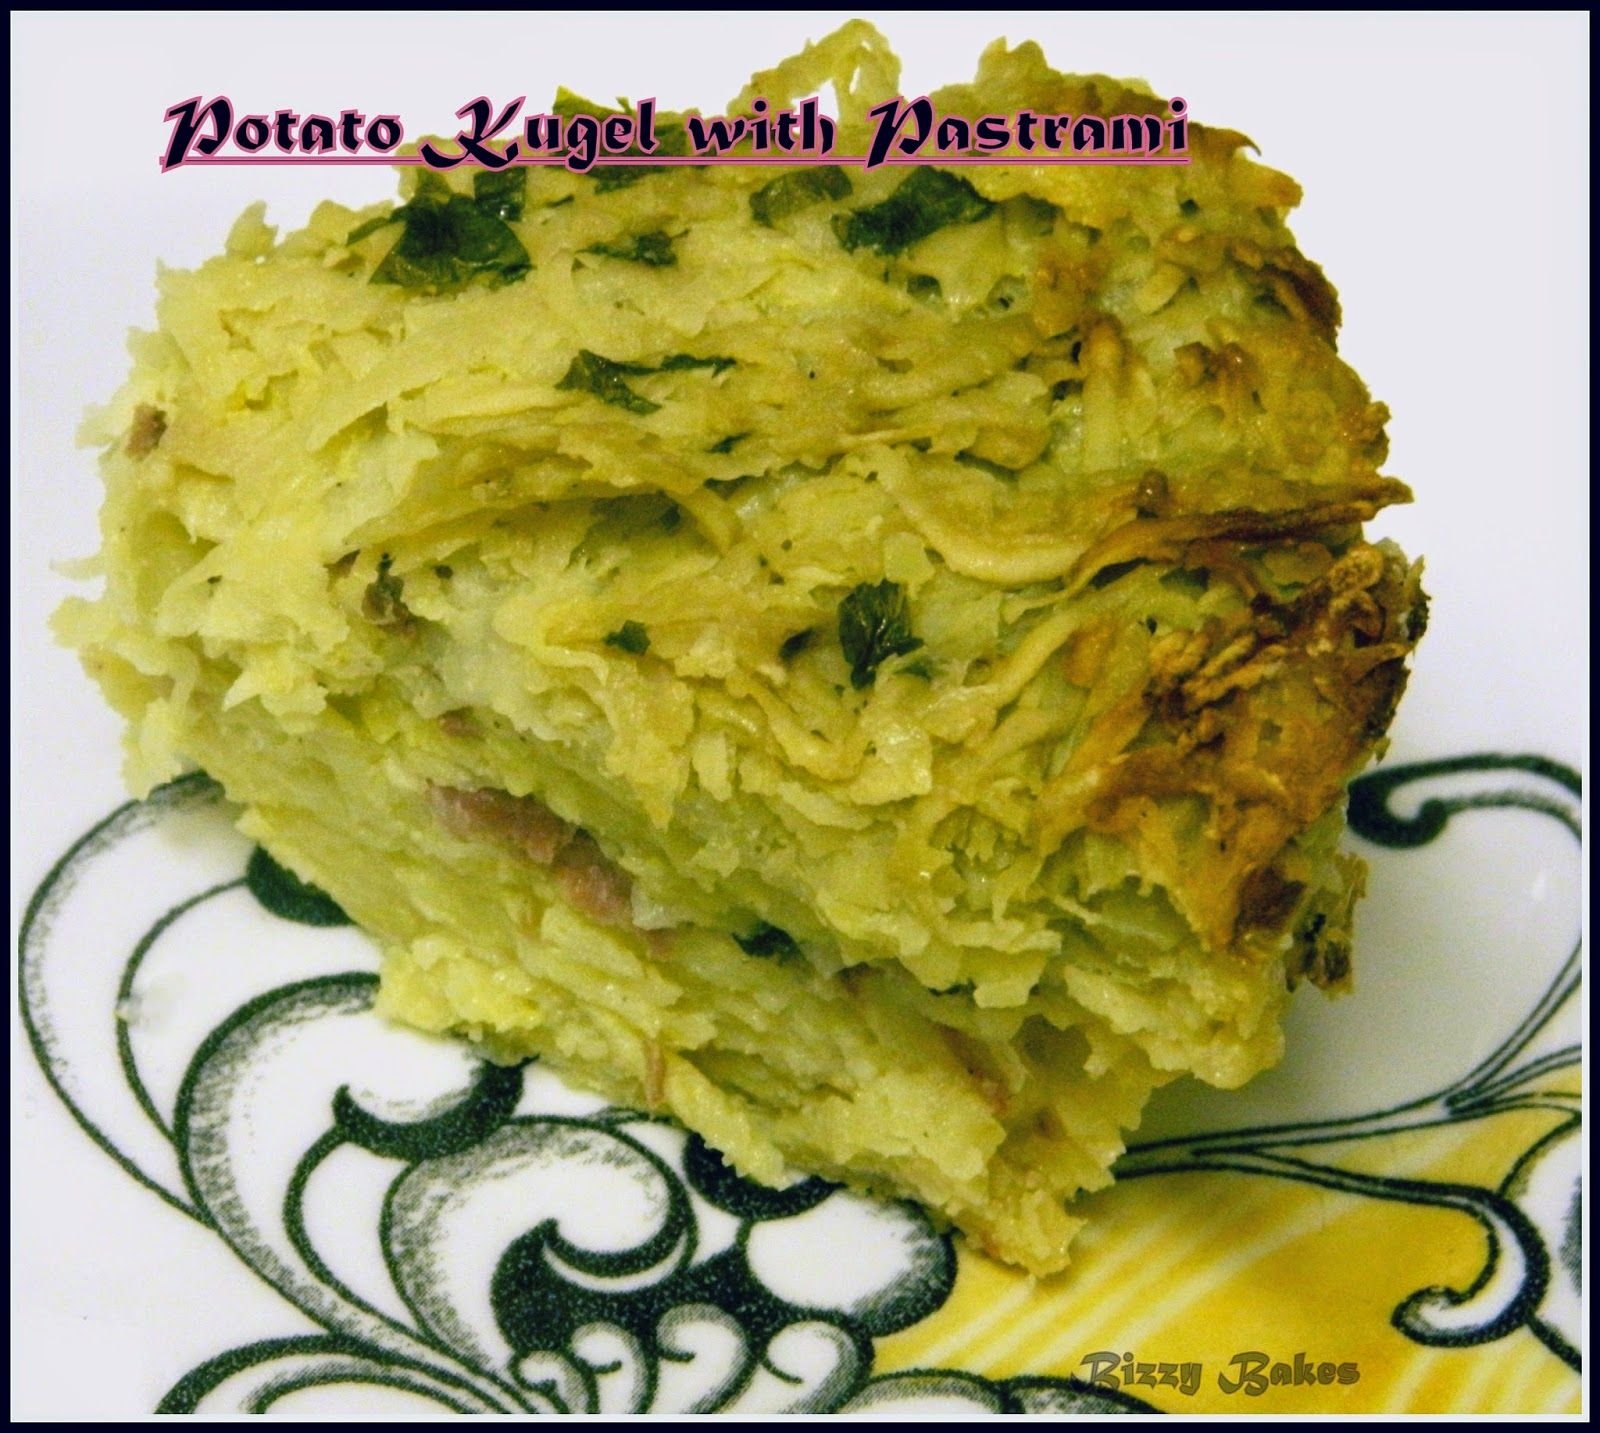 BIZZY BAKES: Potato Kugel with Pastrami